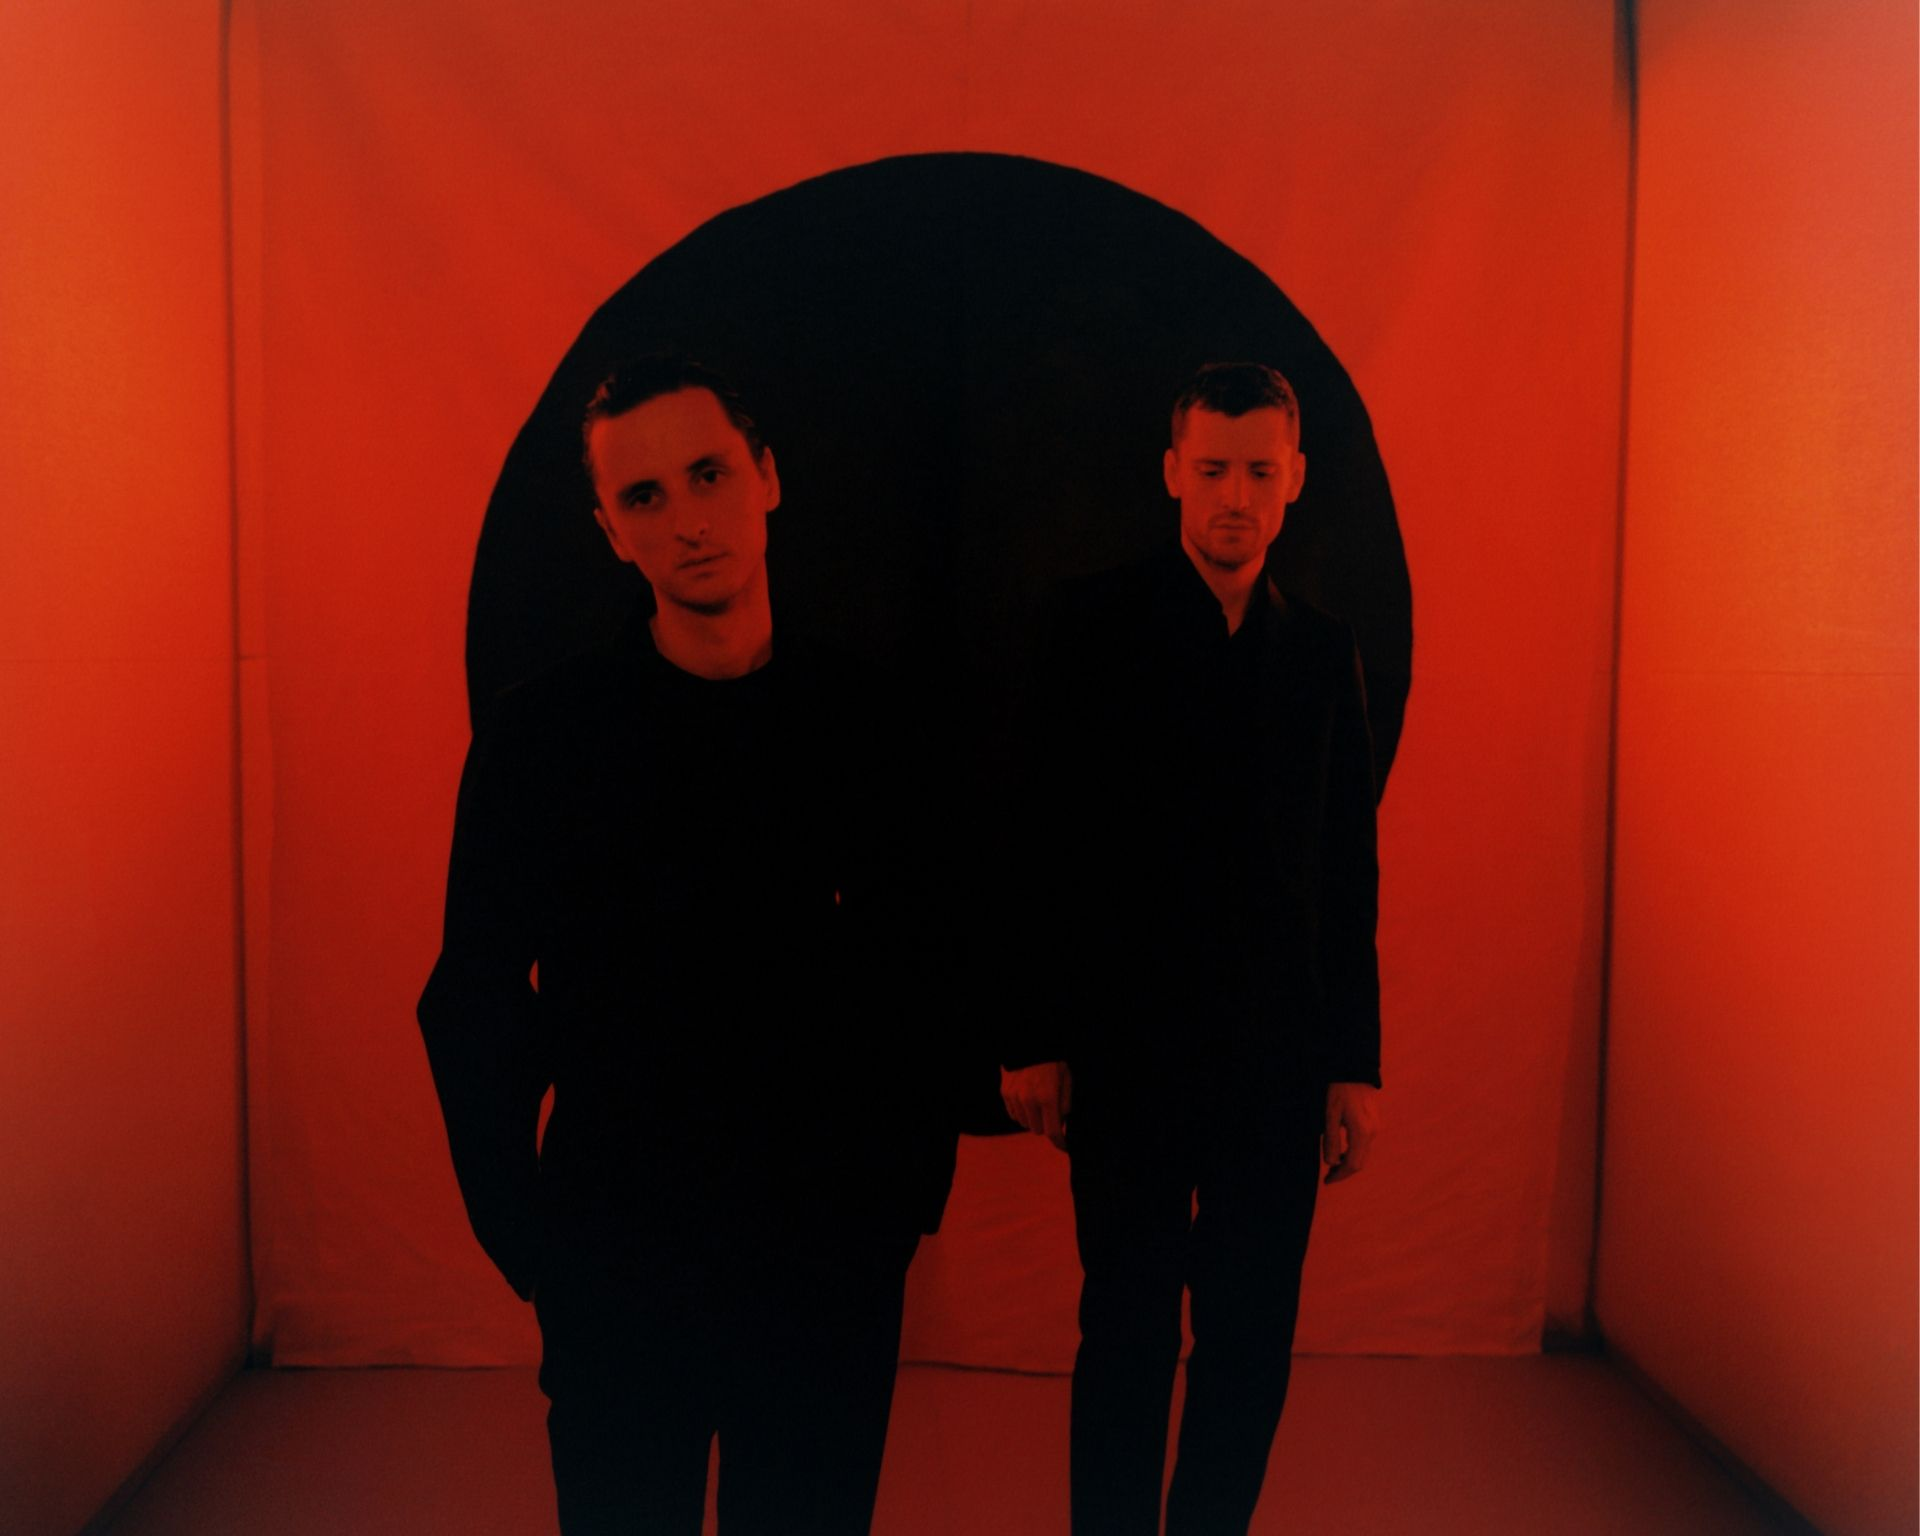 These New Puritans line up